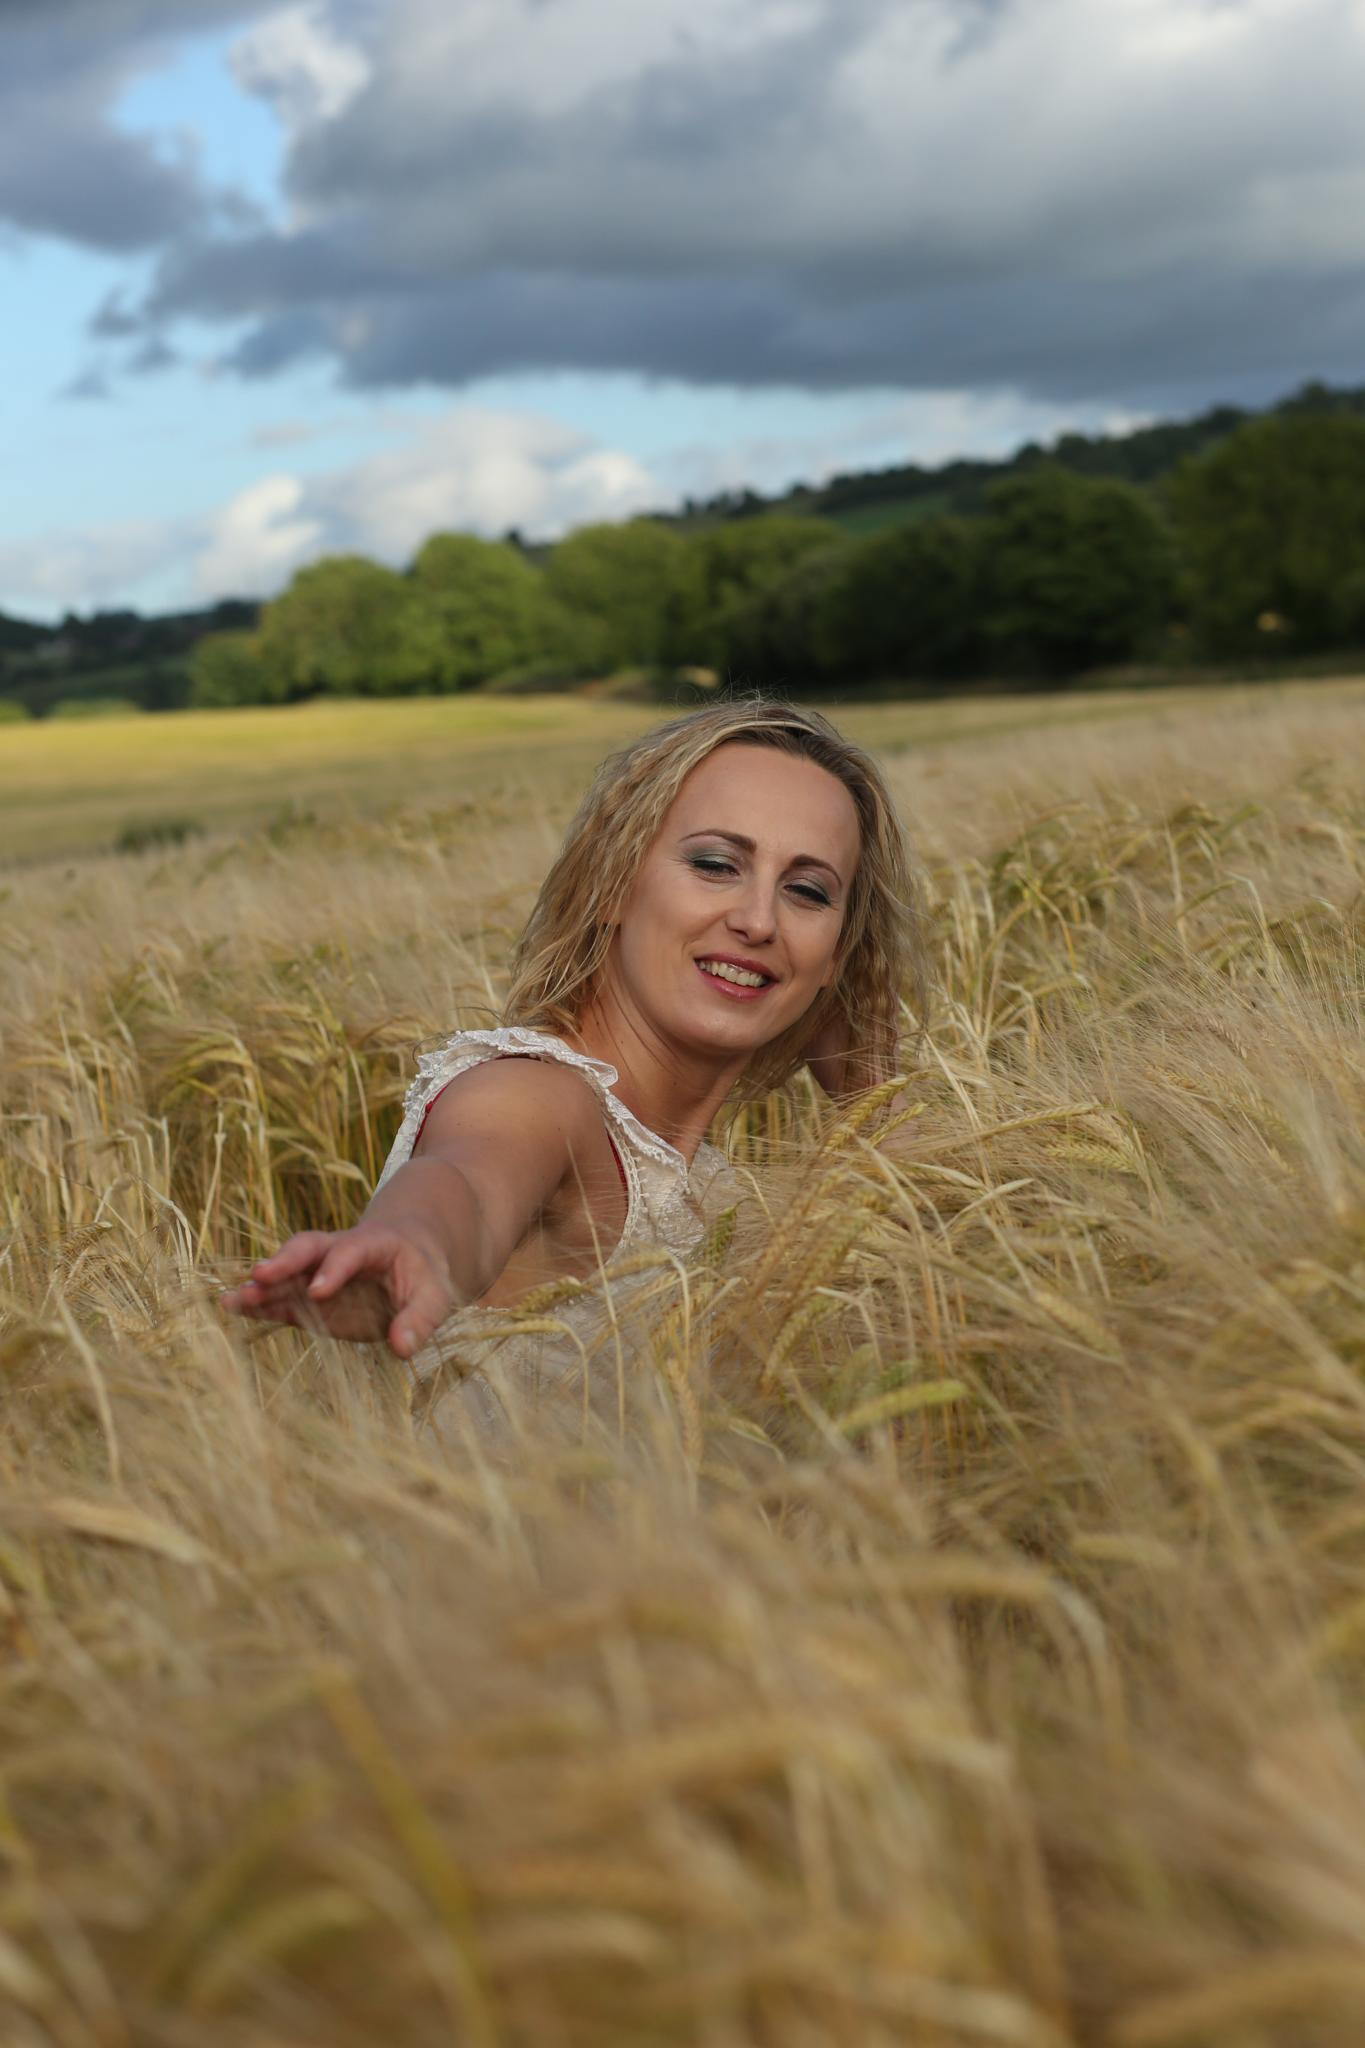 Playing in the summer fields by johndsull